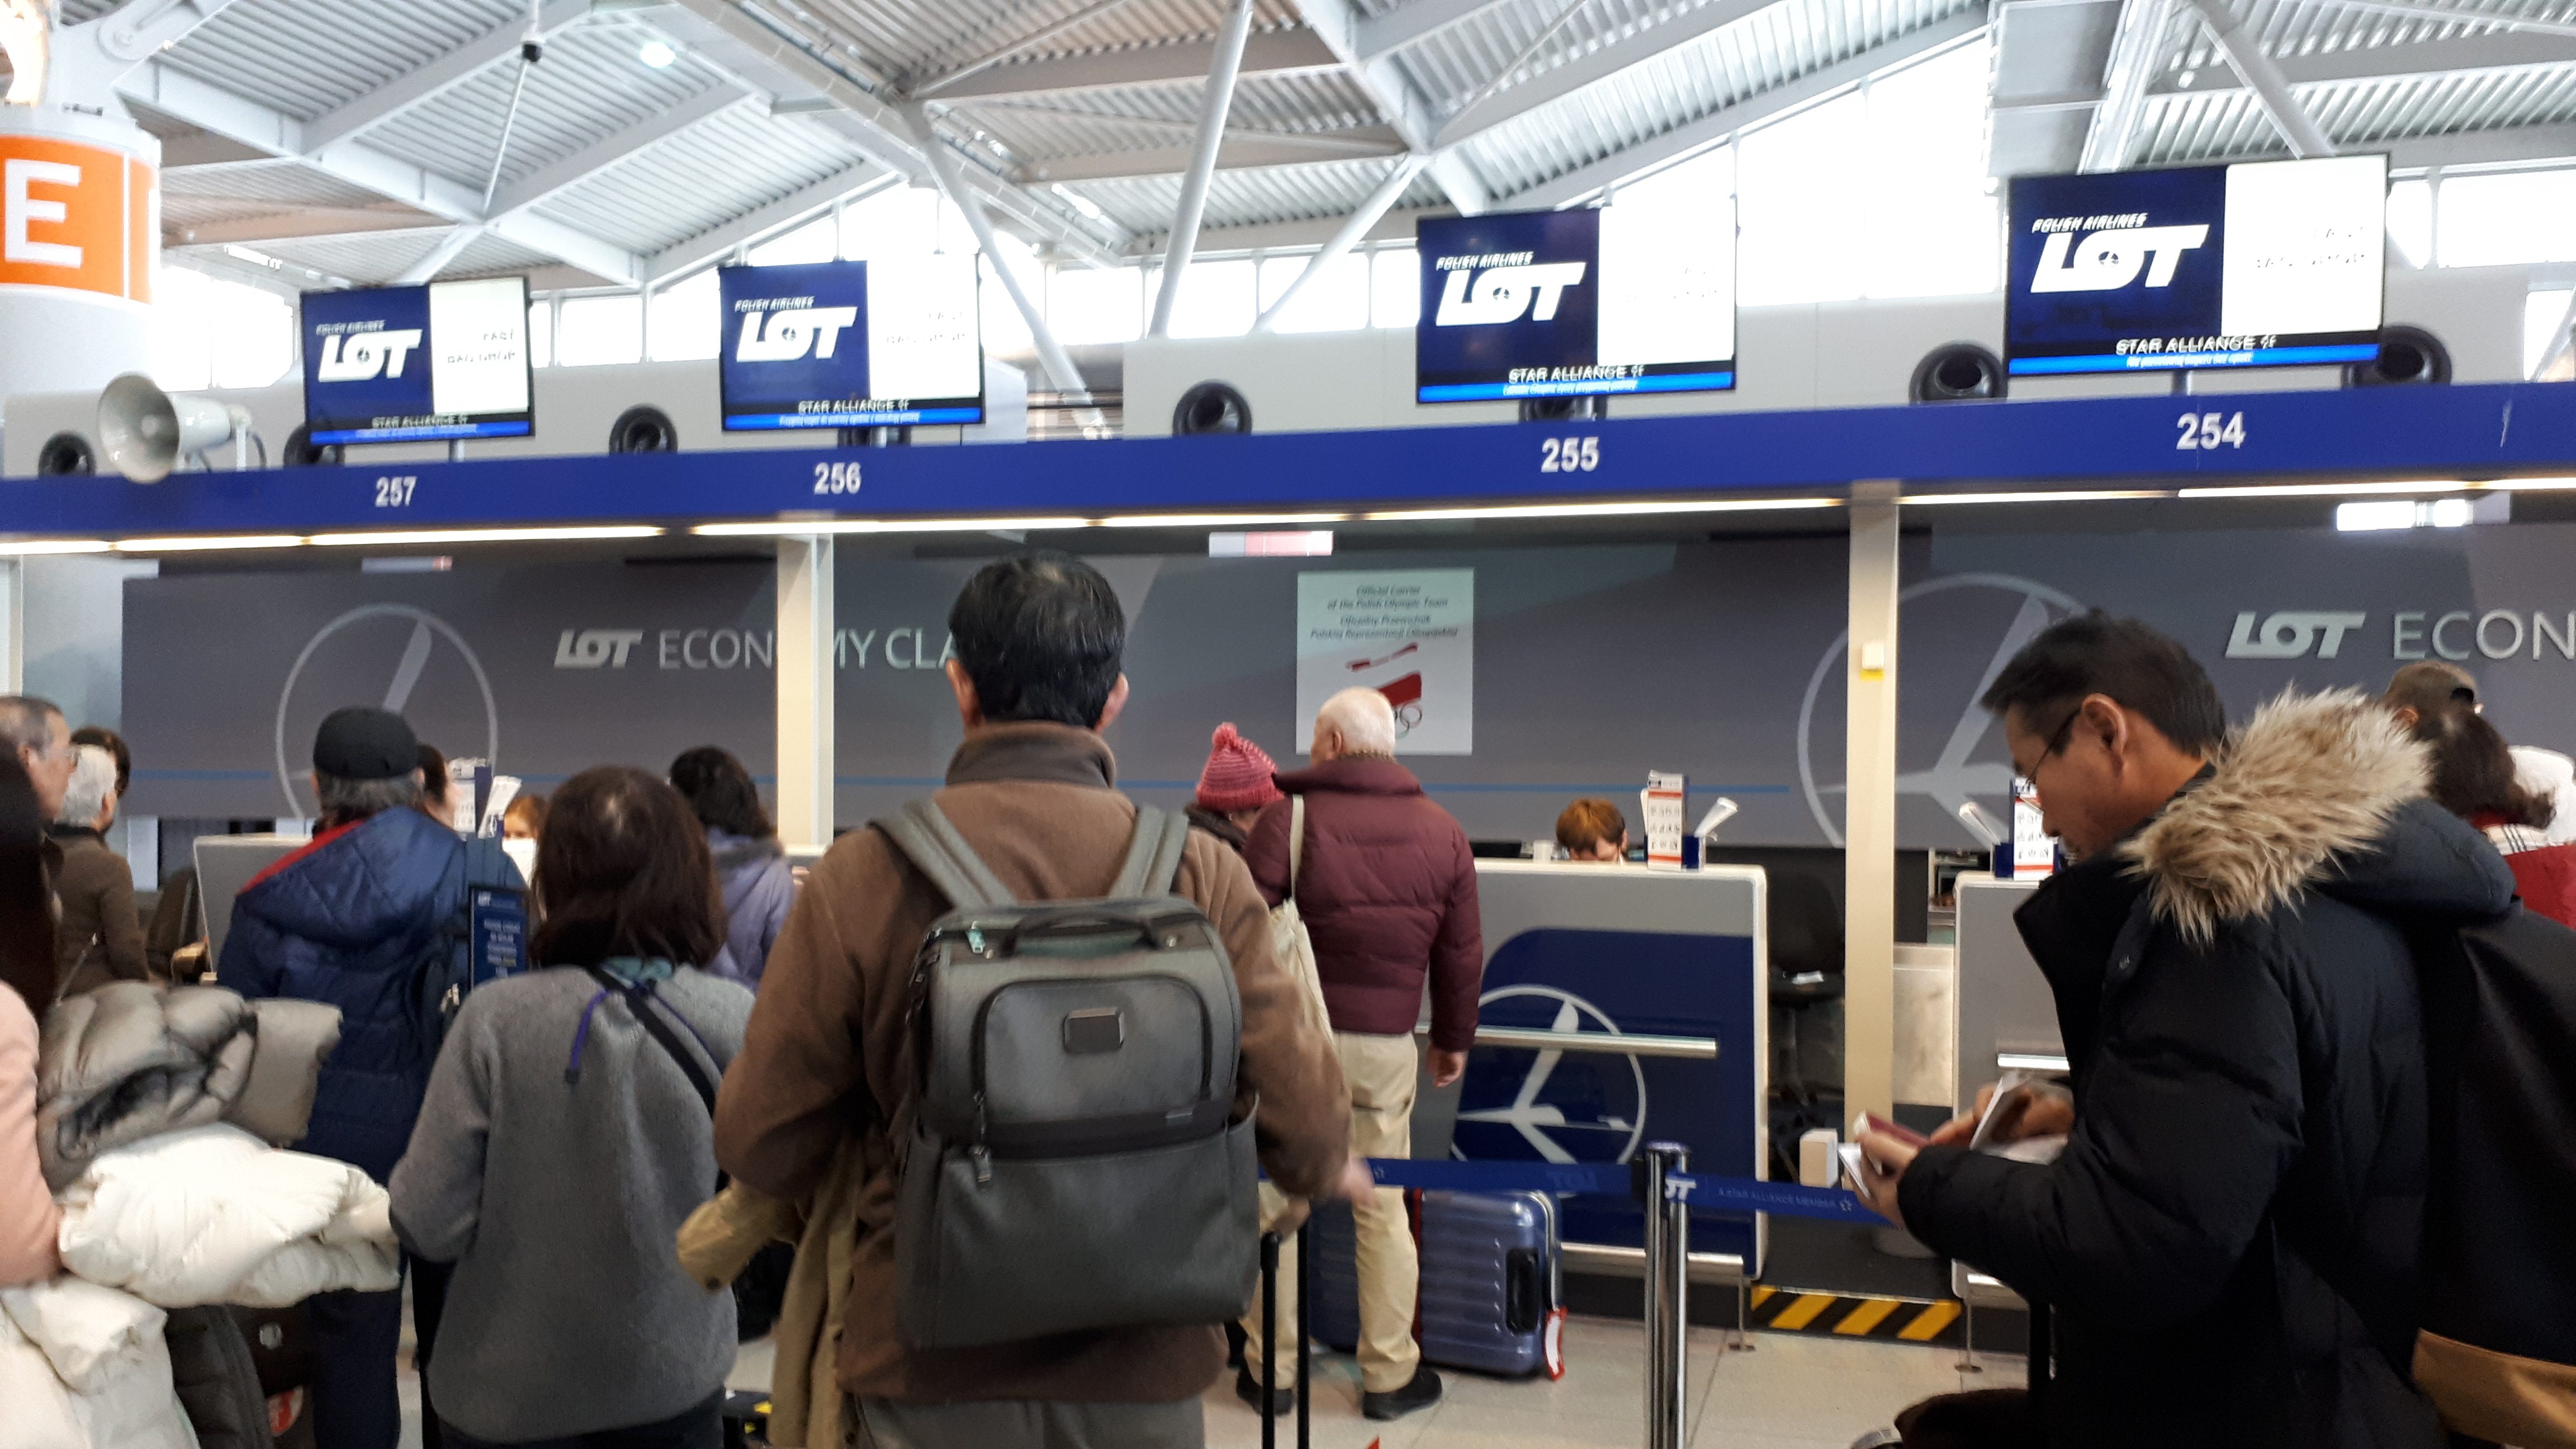 File:20180121 124606-warsaw-airport-chopin-2018.jpg - Wikimedia Commons